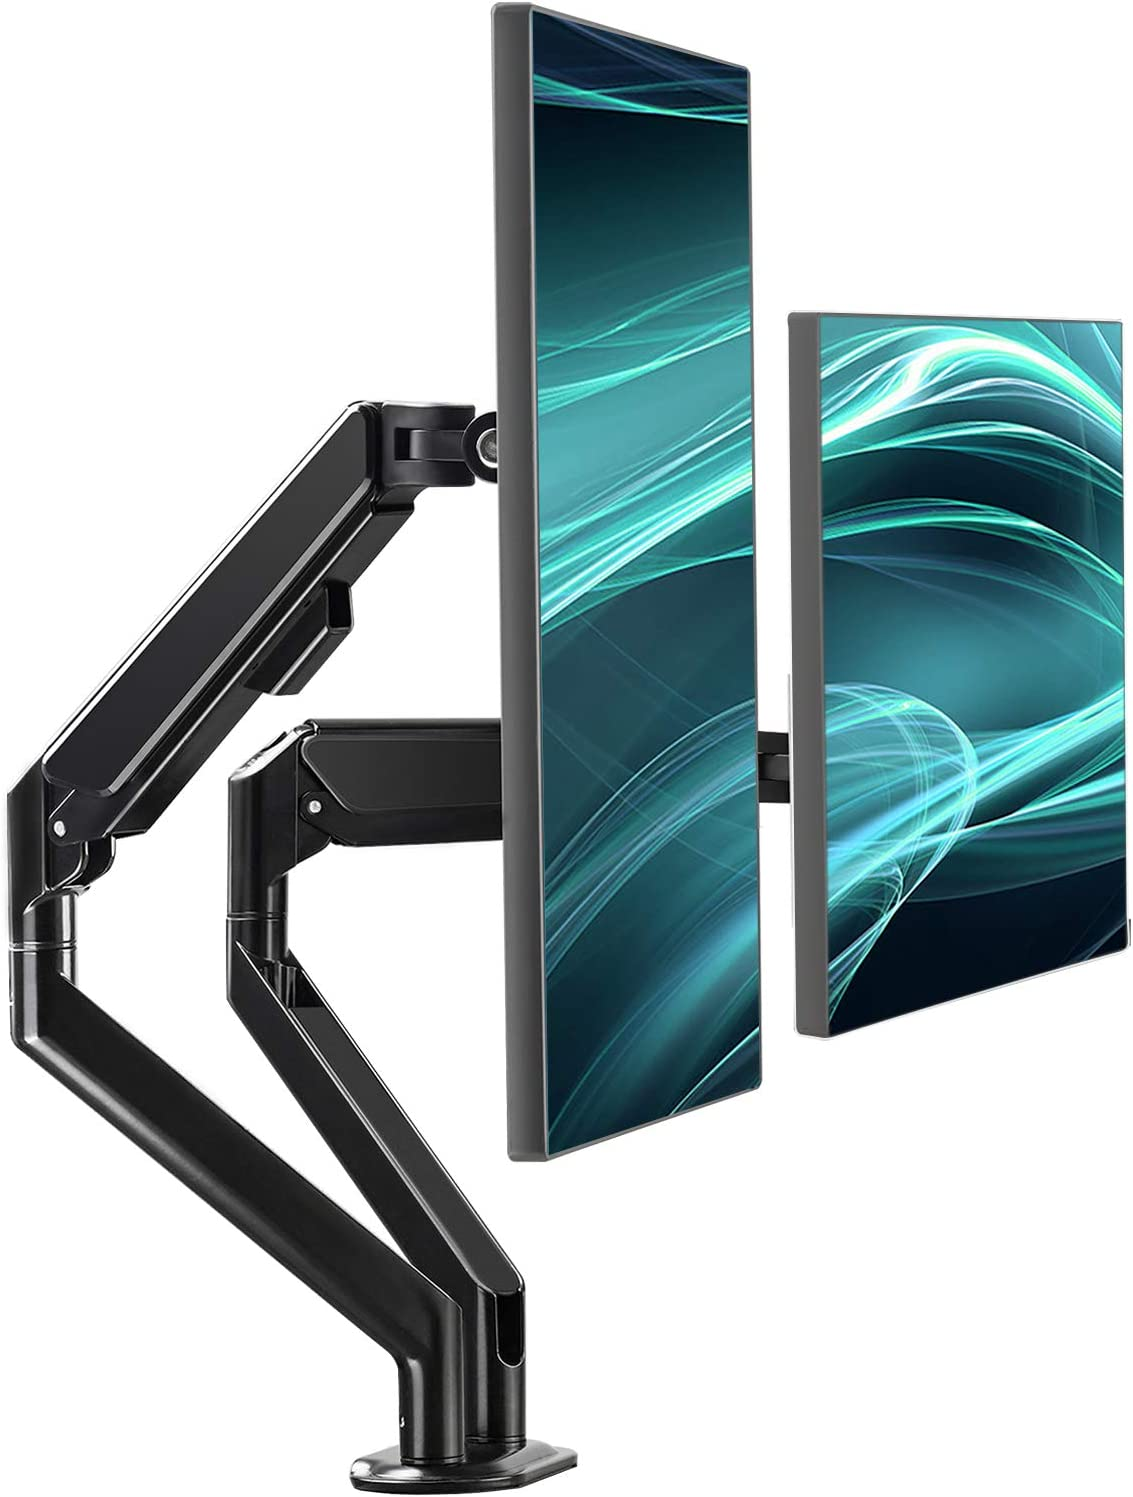 EleTab Dual Arm Monitor Stand - Height Adjustable Desk Monitor Mount Fits for Computer Screens 17 to 32 inches - Each Arm Holds up to 19.8 lbs, Black